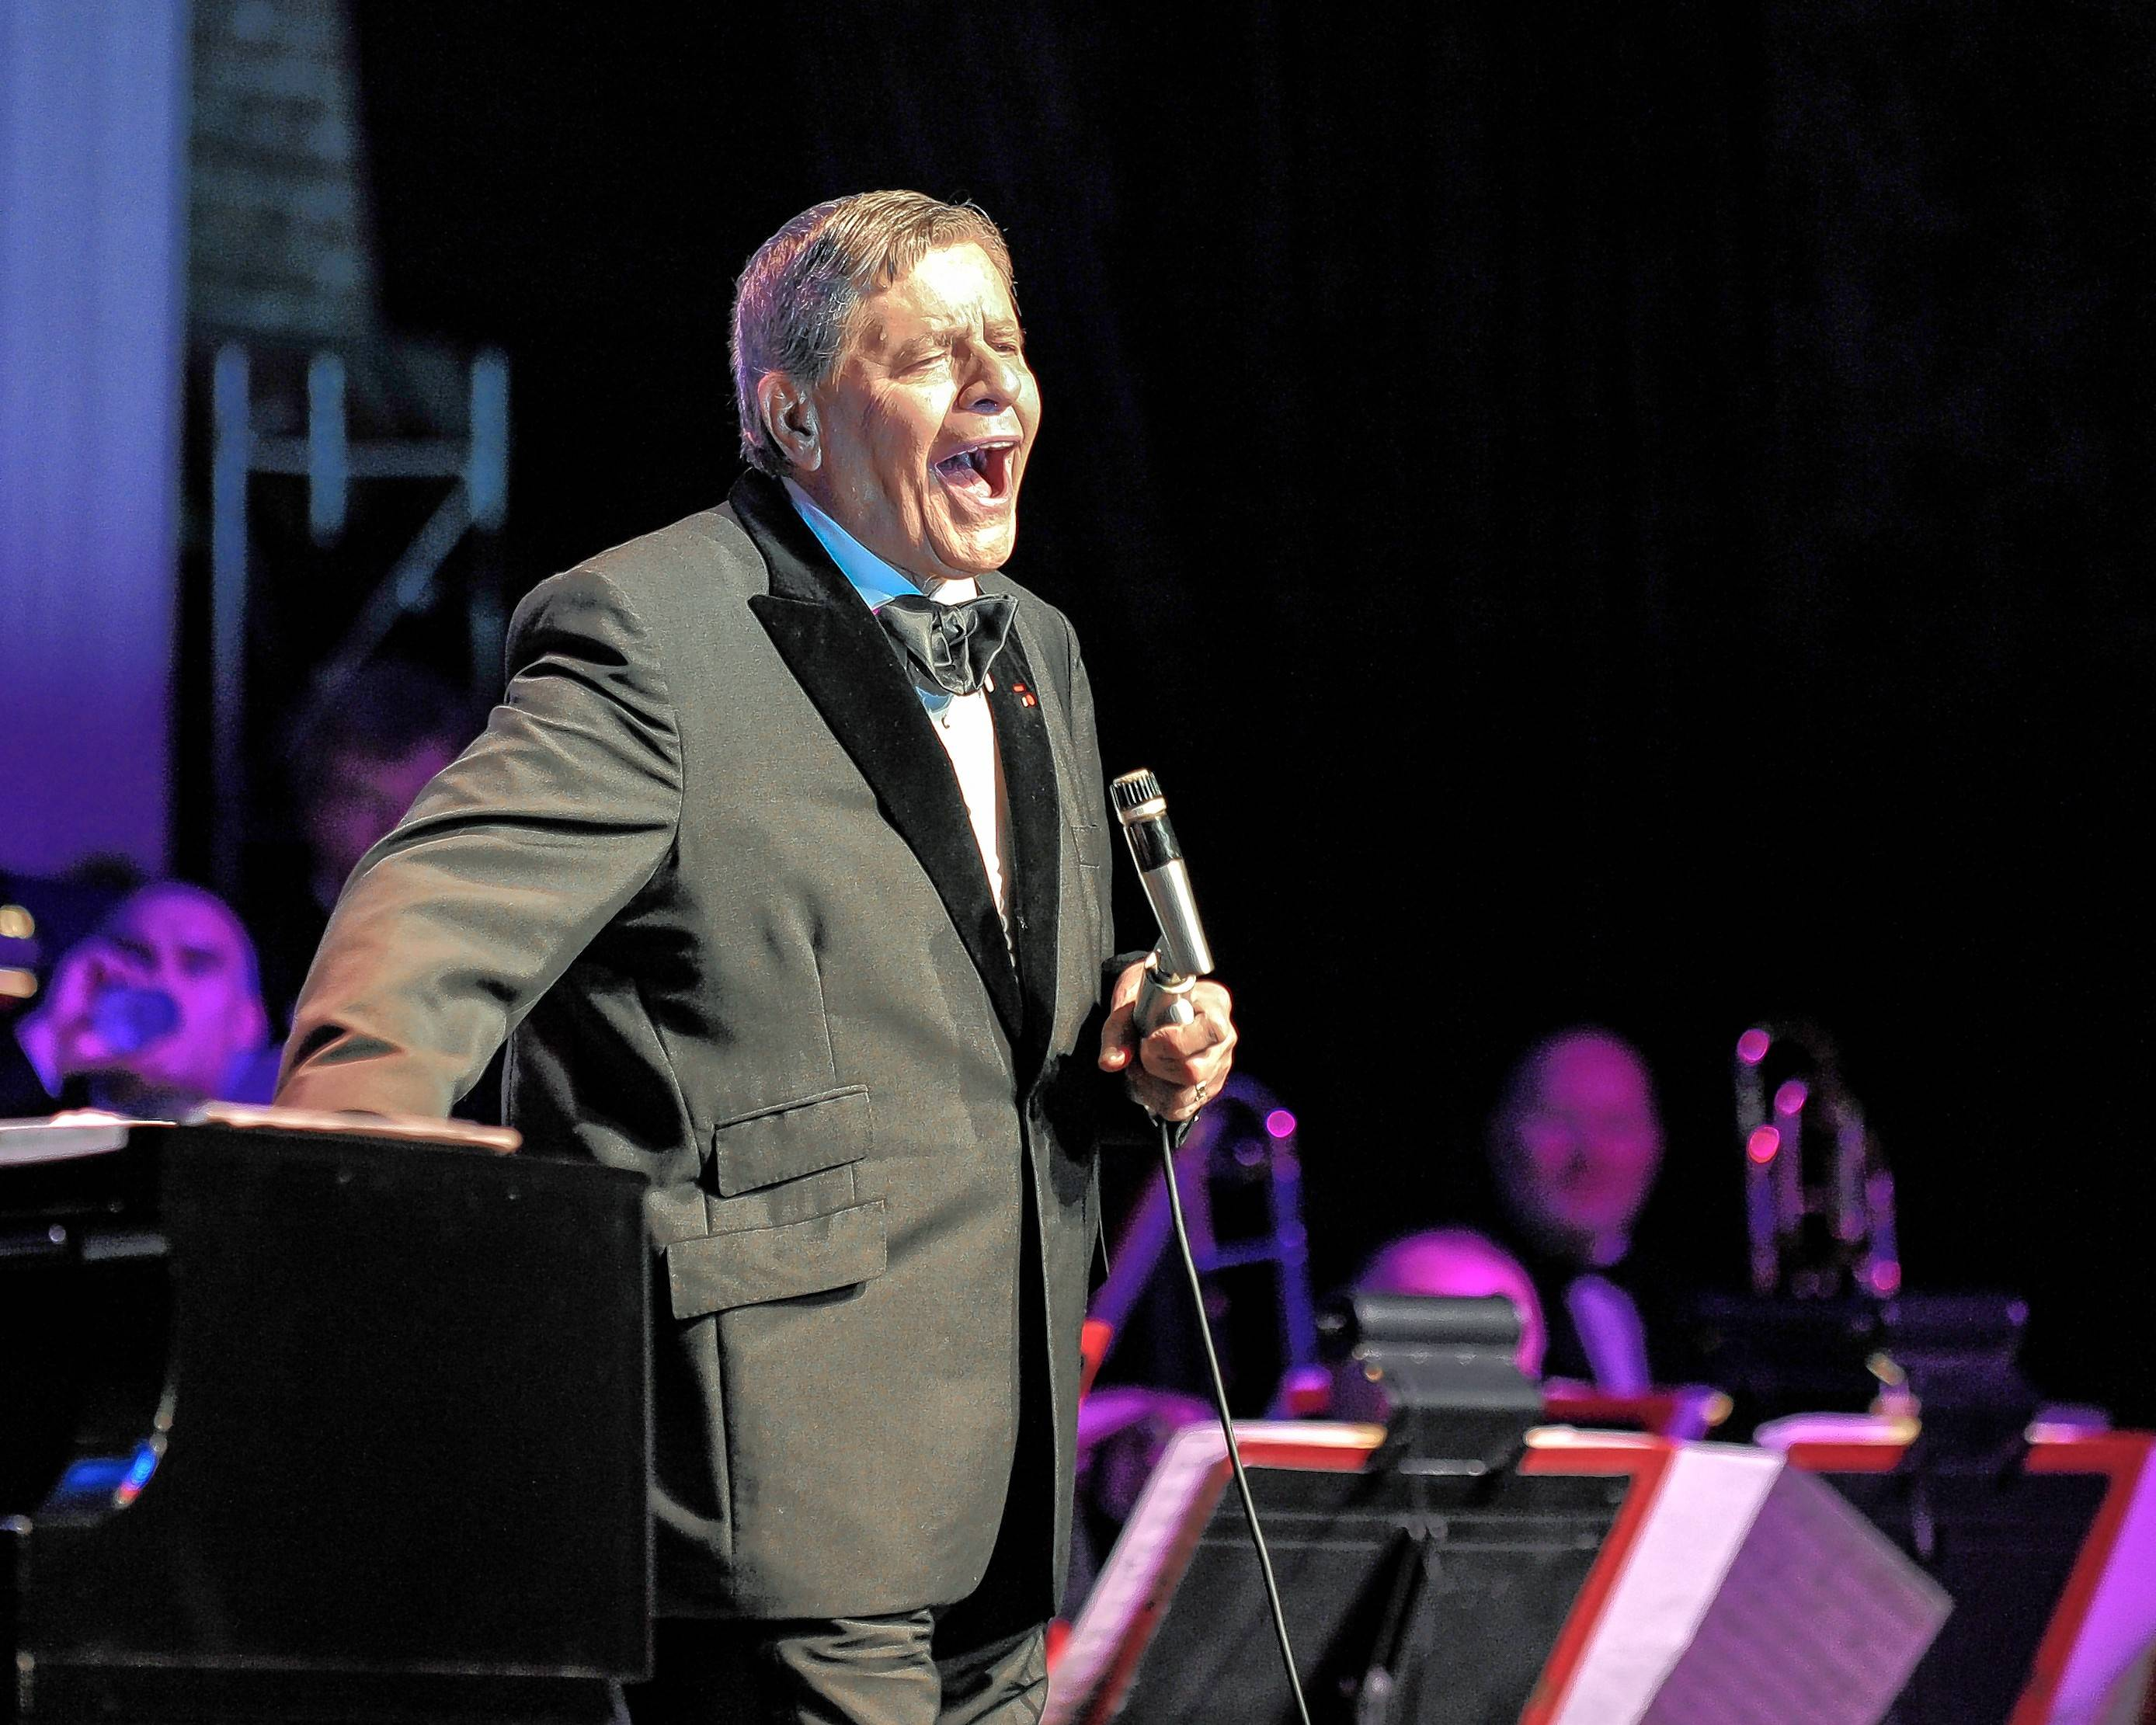 Jerry Lewis, who died Aug. 20 at 91, once performed at the Arcada Theatre in St. Charles.